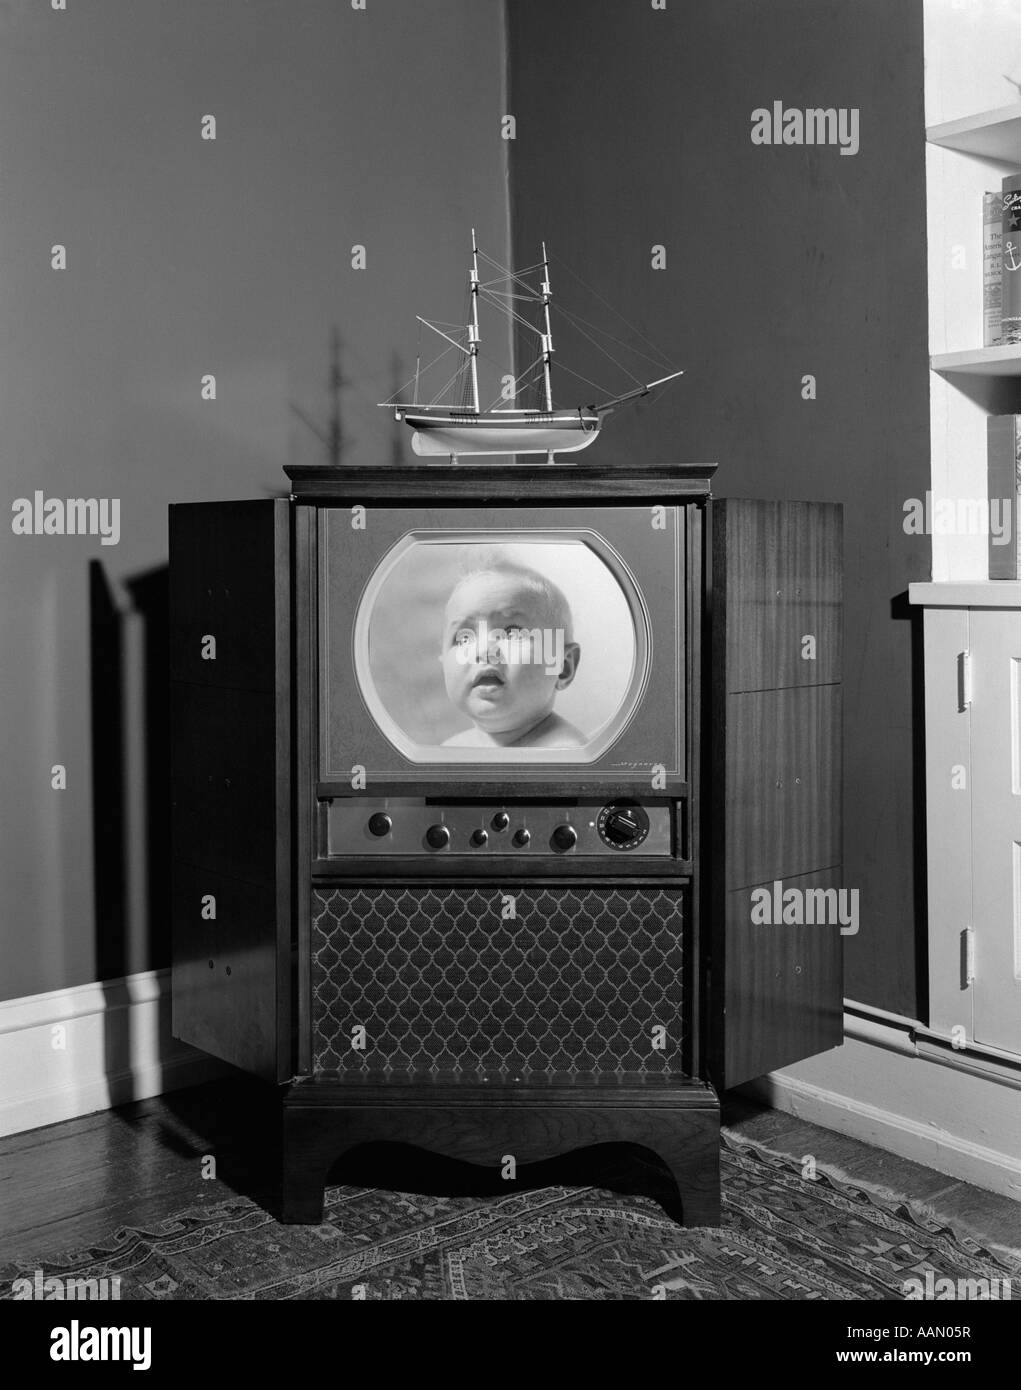 Fantastic 1940s 1950s CONSOLE BLACK AND WHITE TELEVISION SET WITH MANY DIALS  QW44